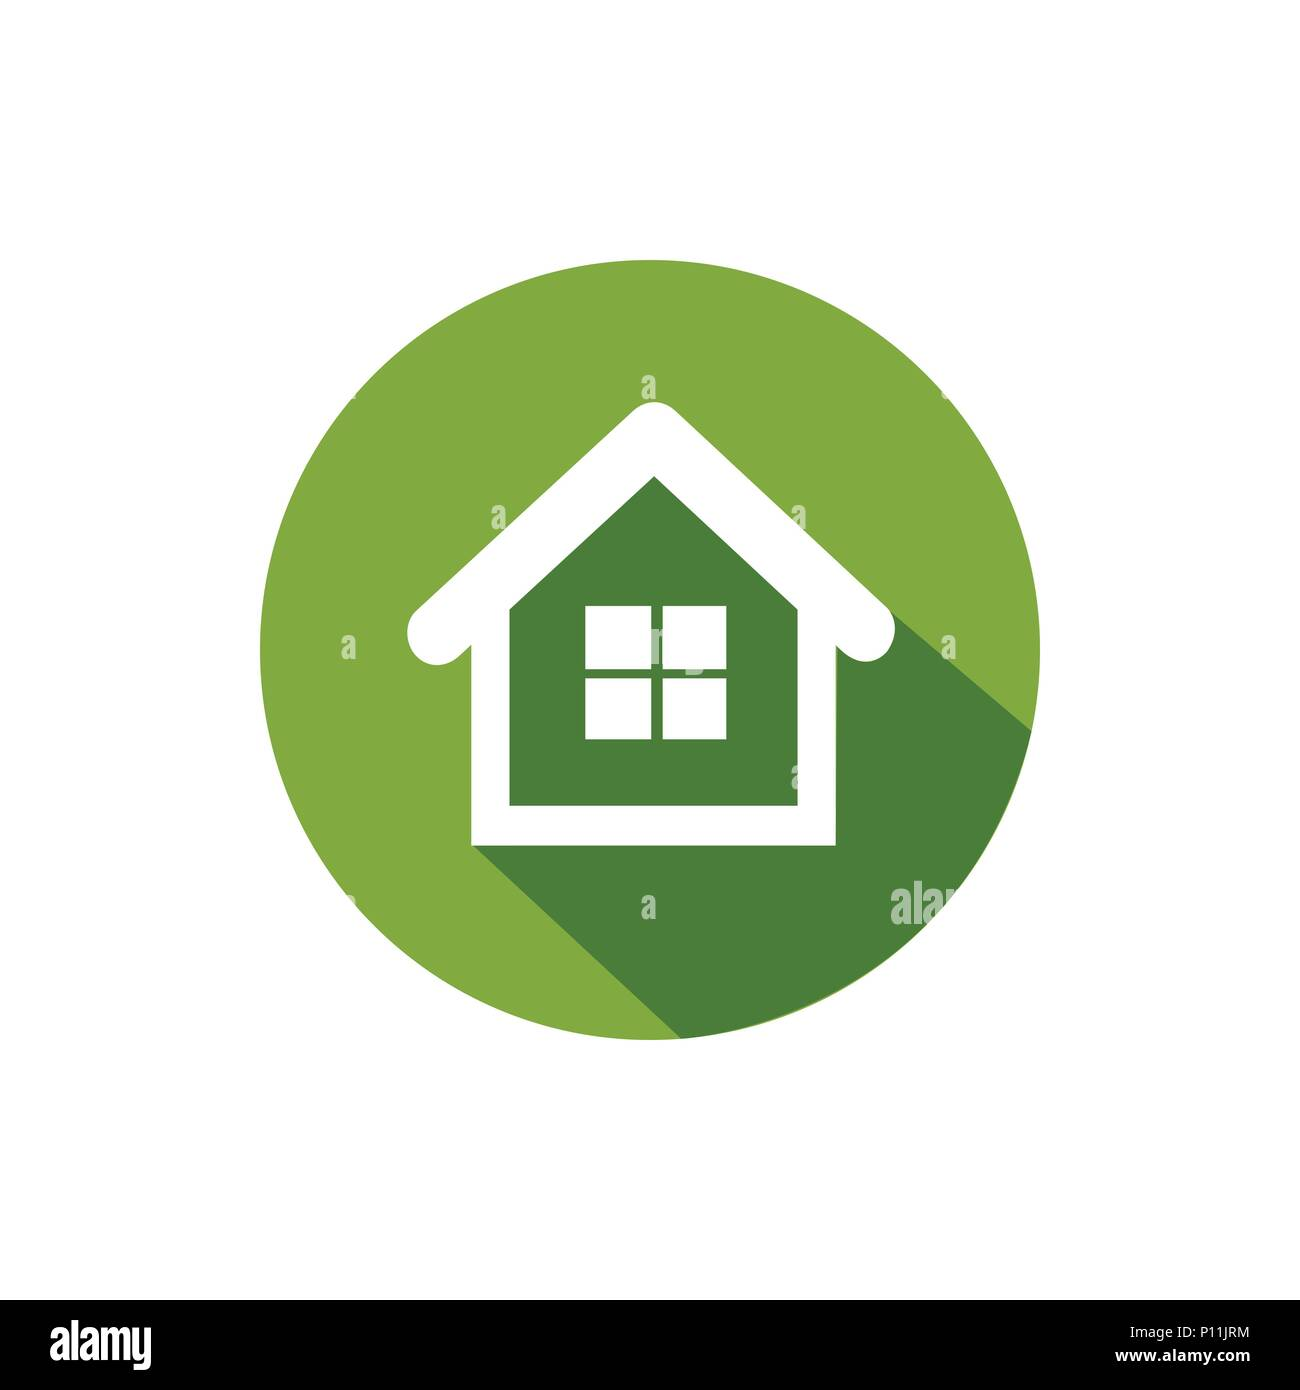 Green house icon, clipart - Stock Vector